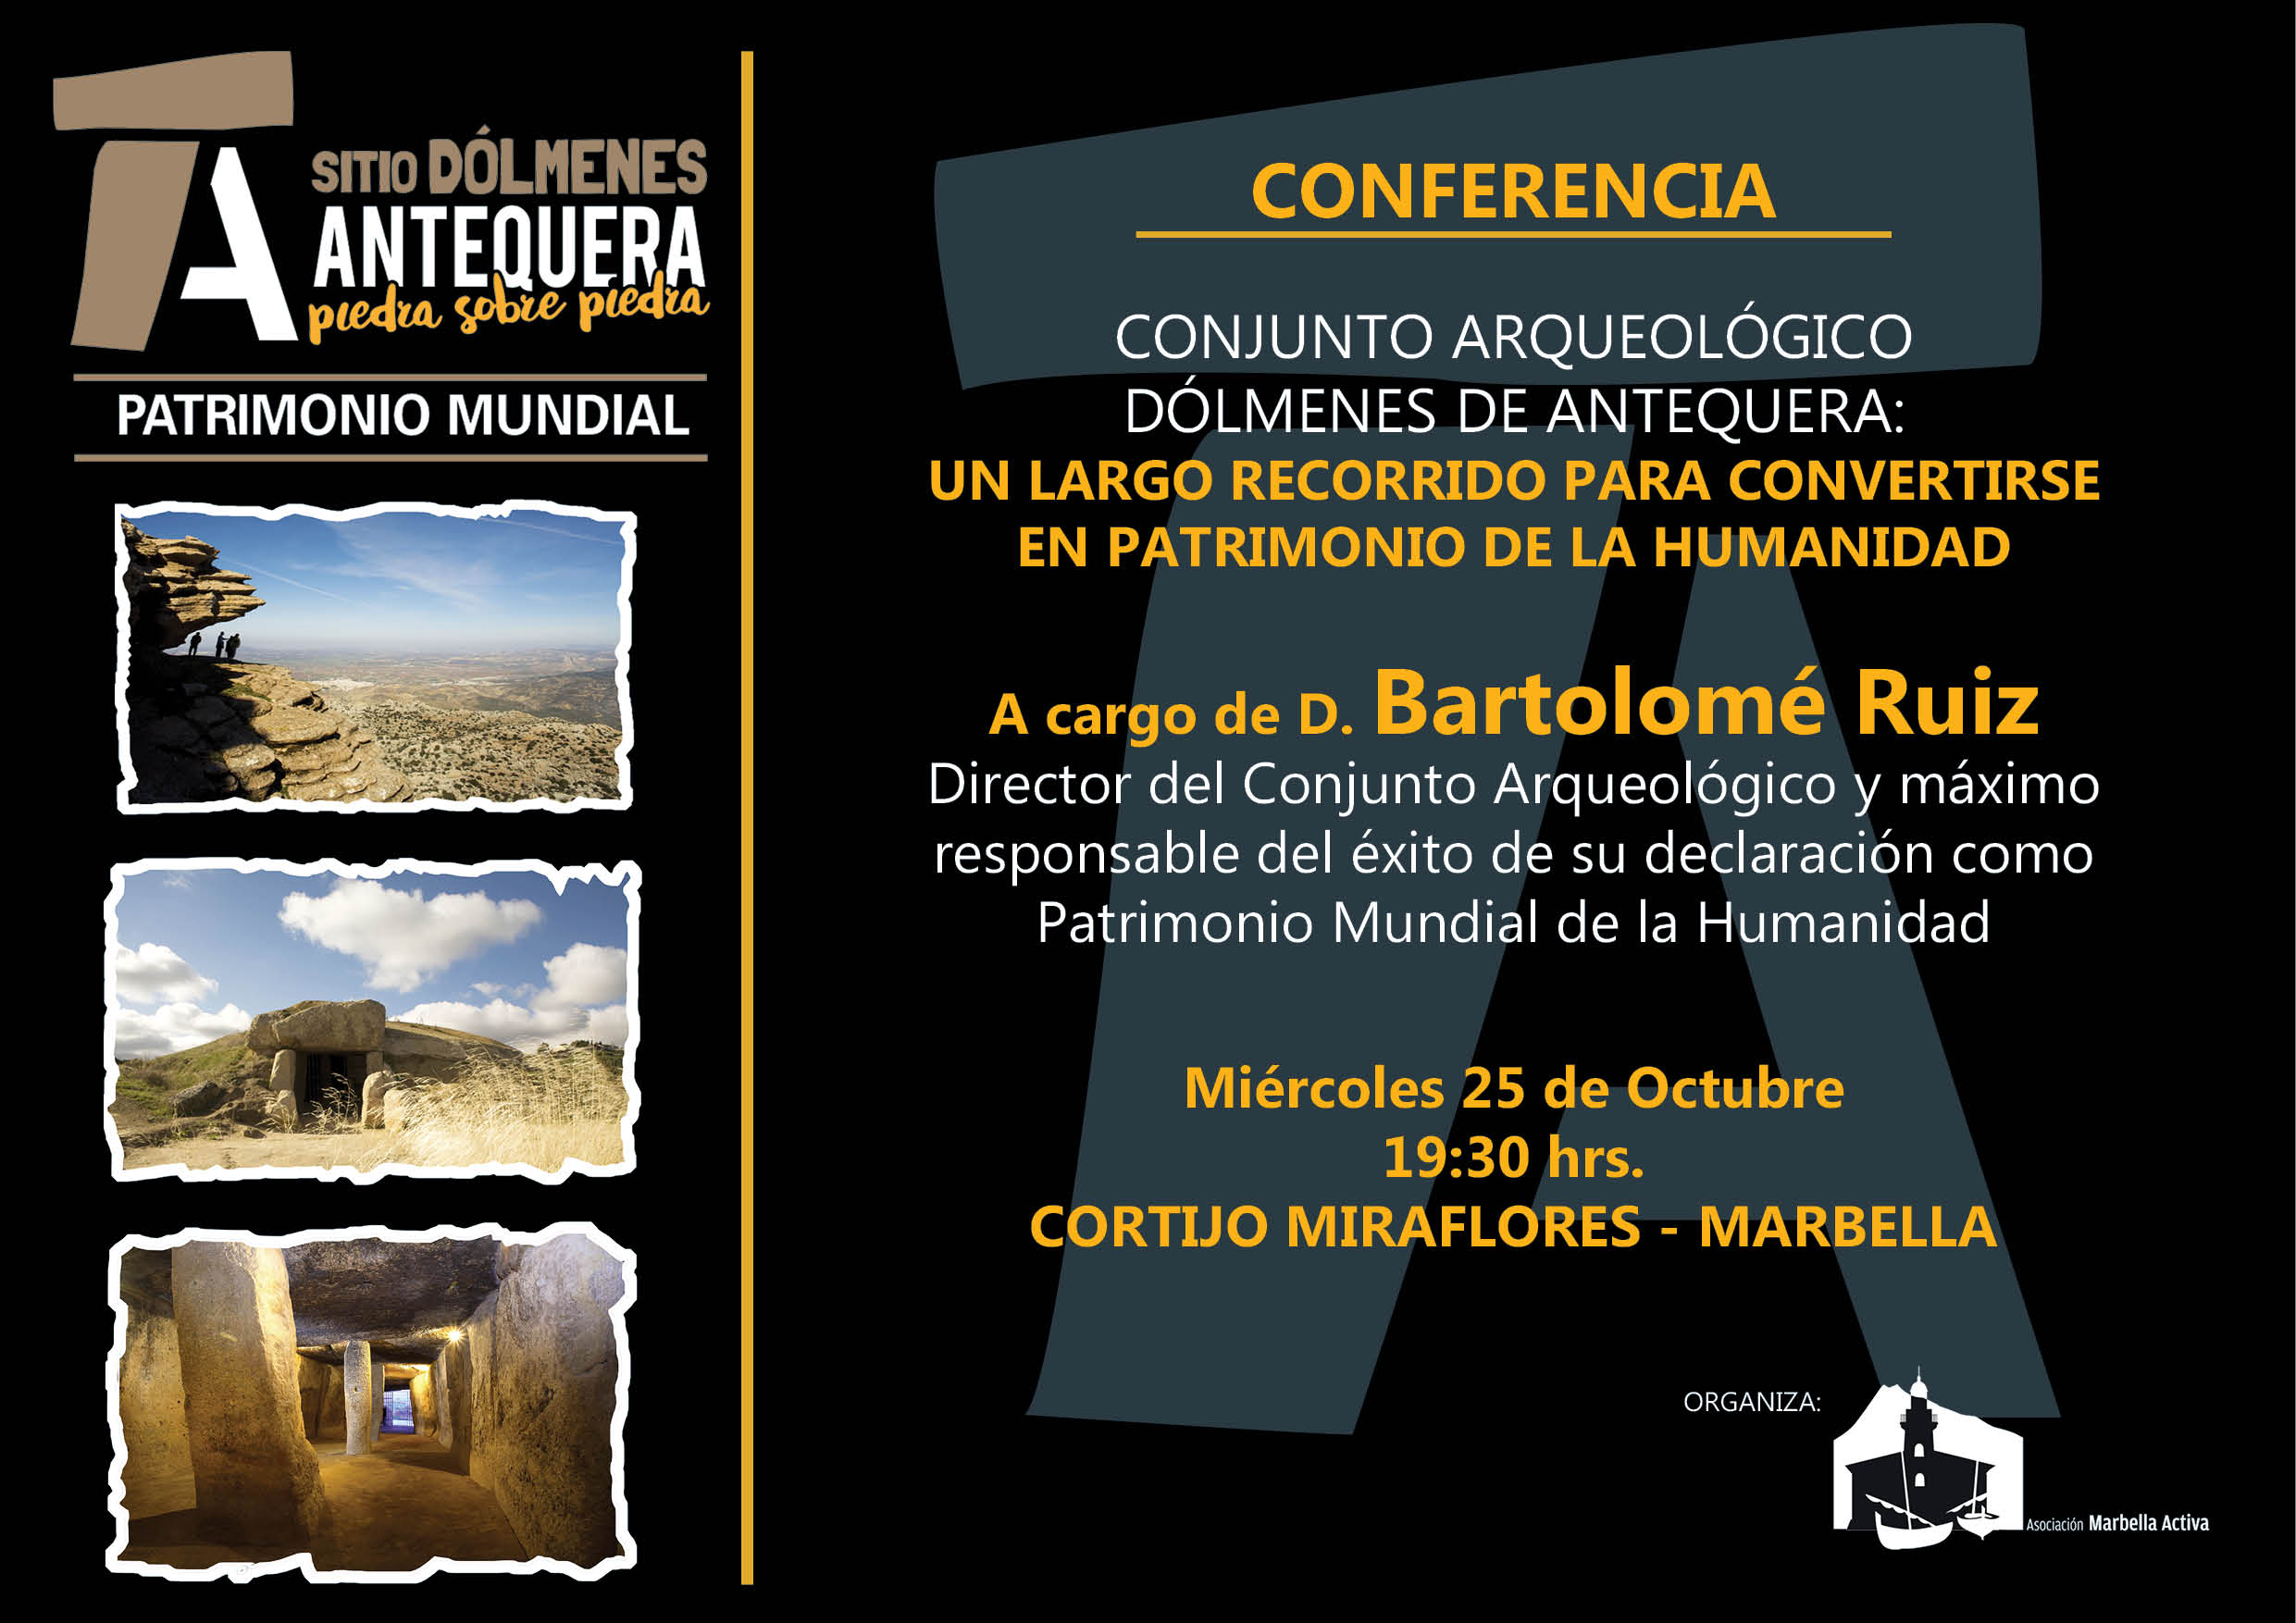 CARTEL CONFERENCIA DOLMENES